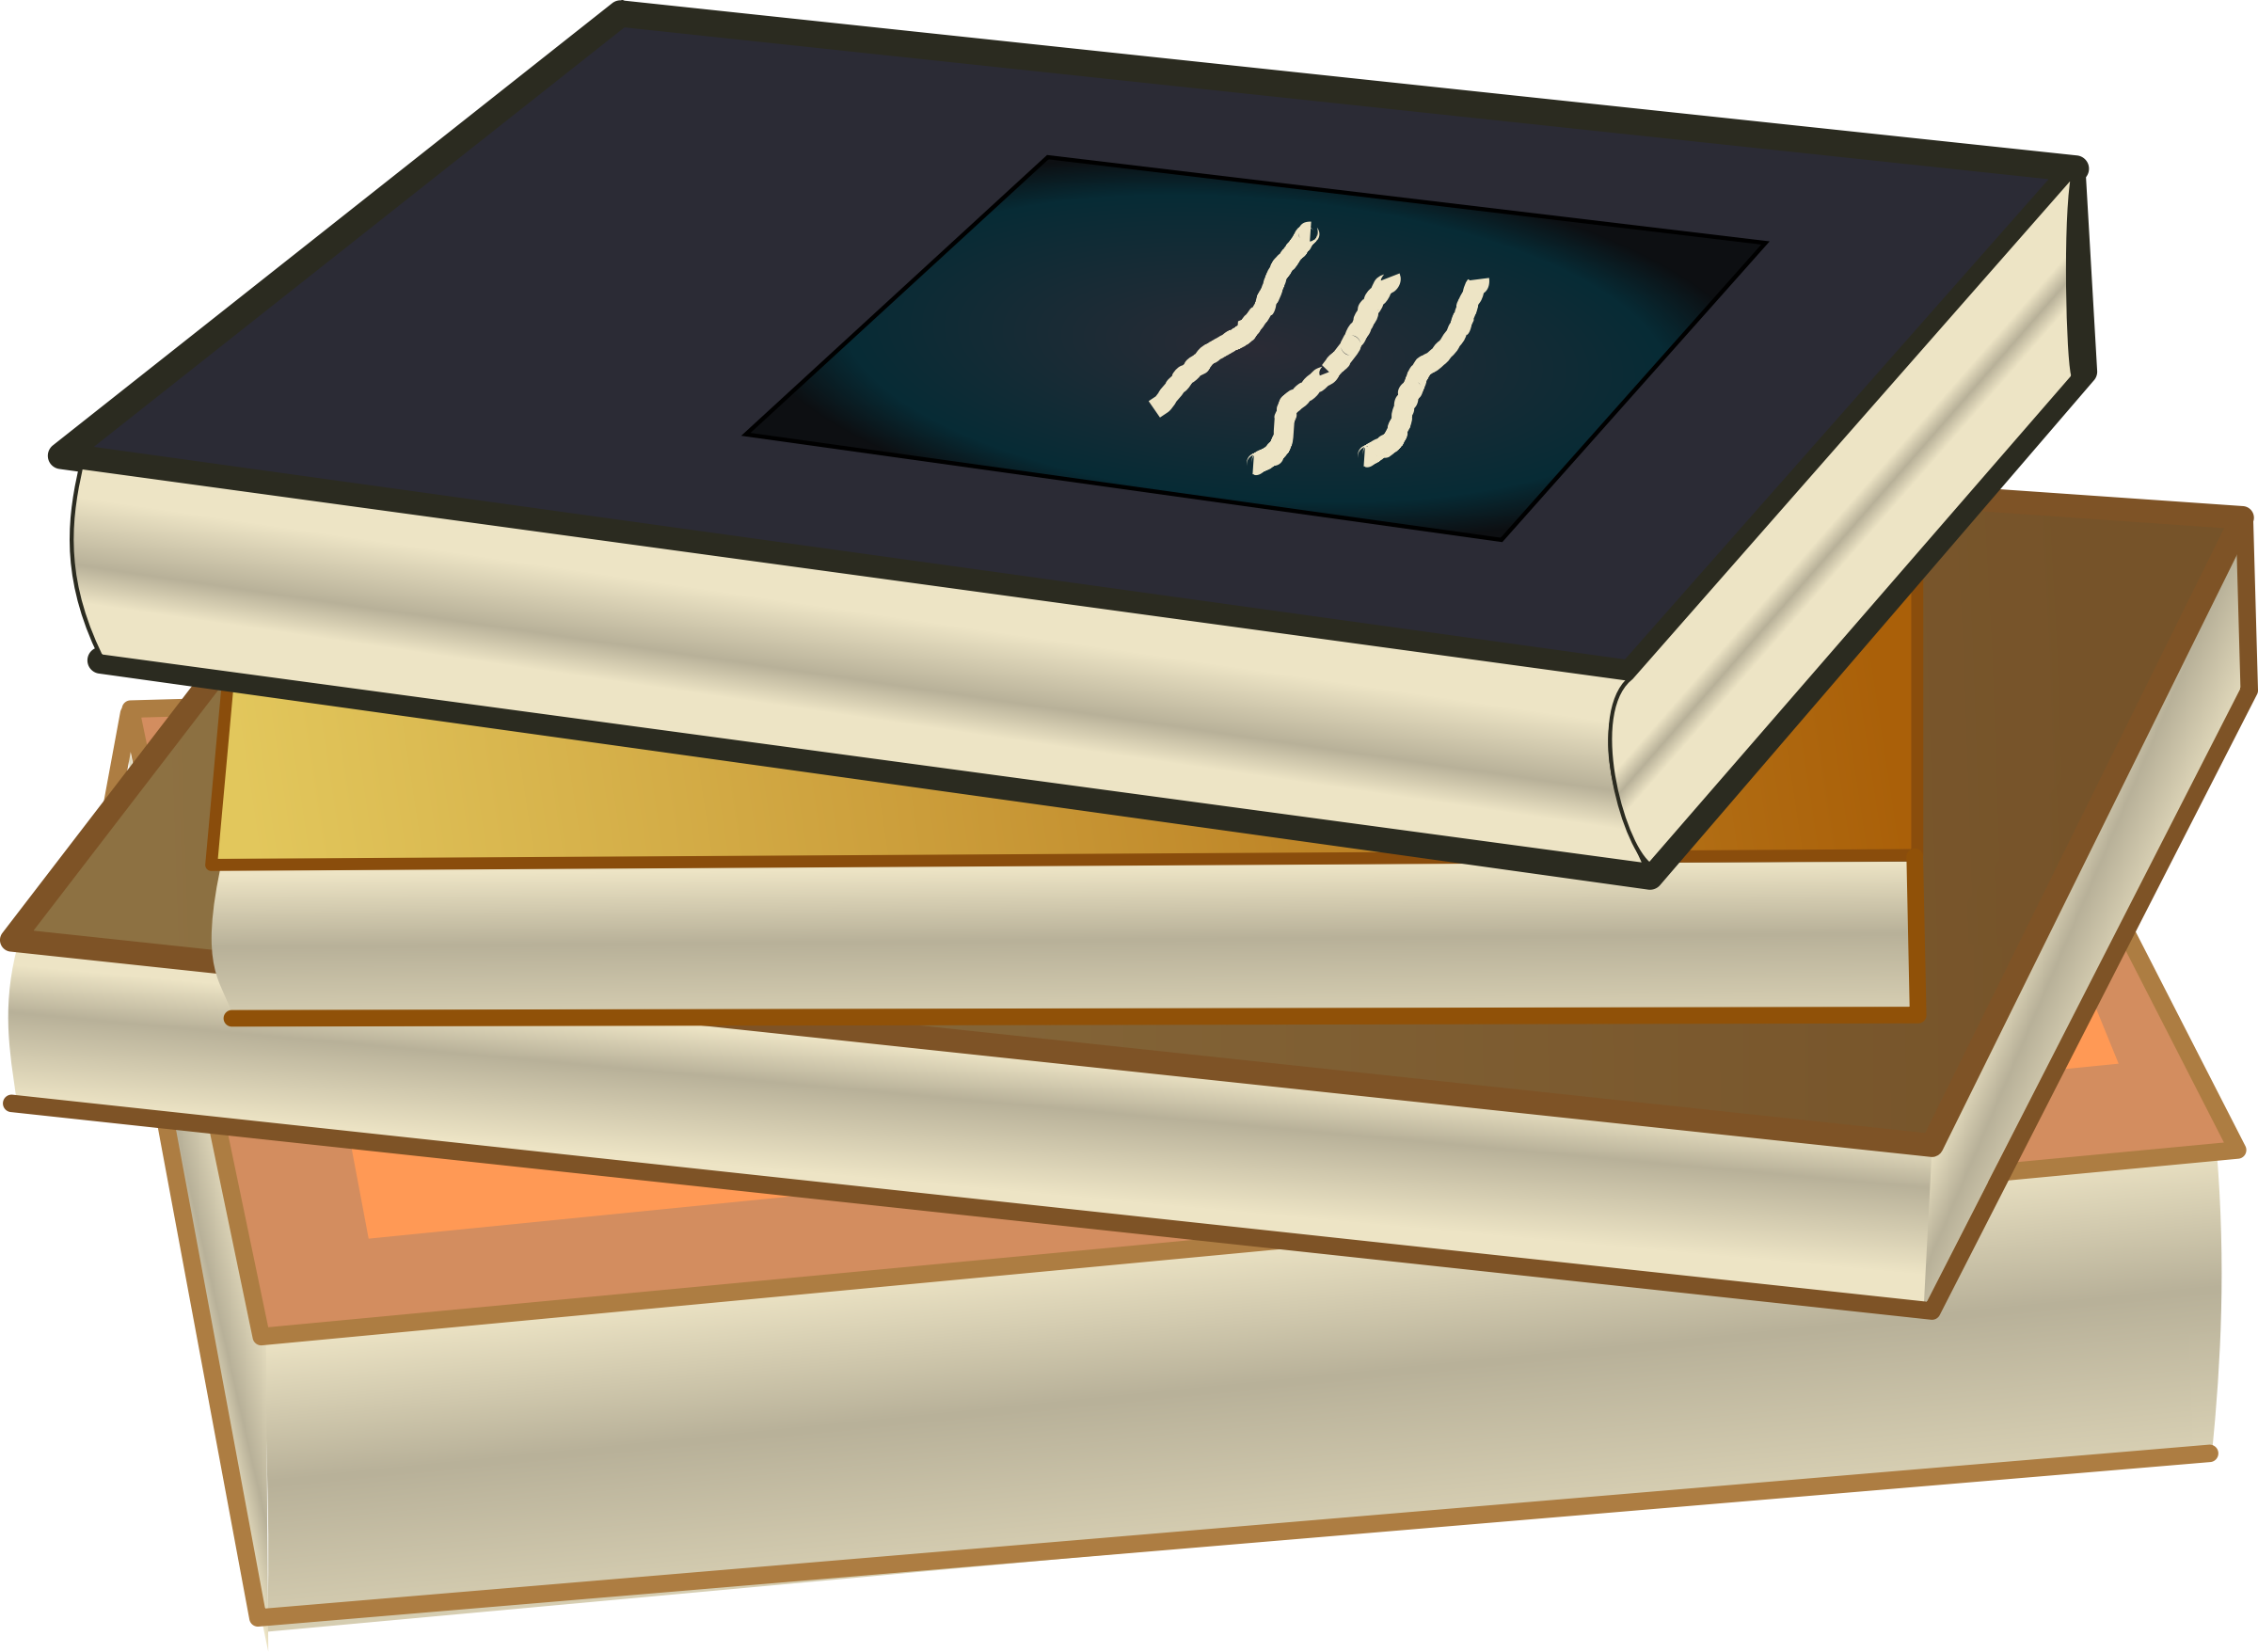 small stack of books